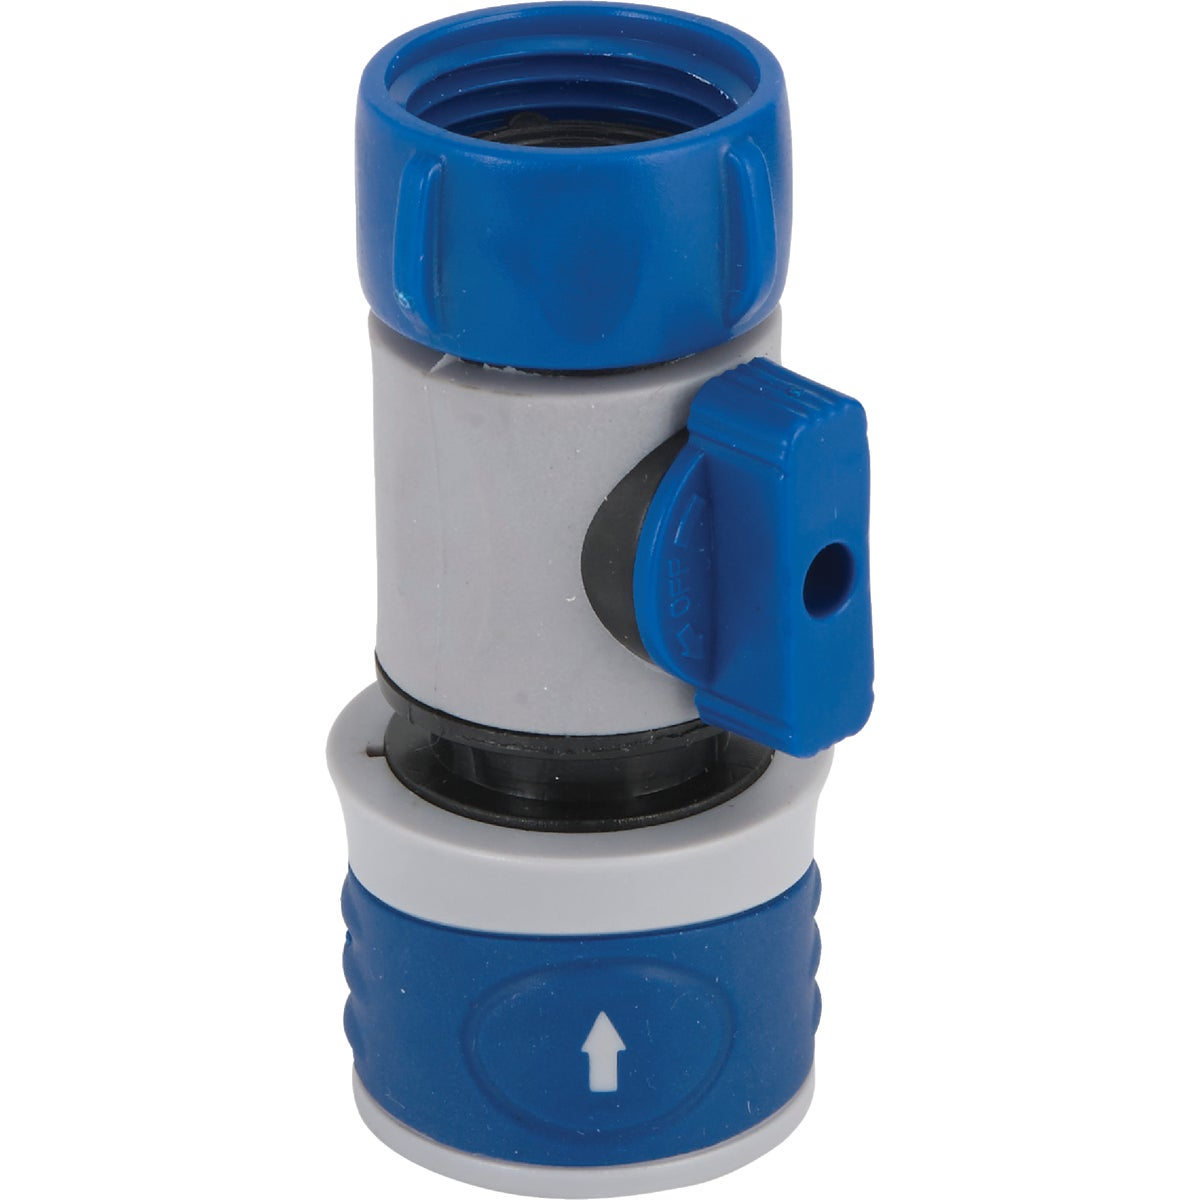 HOSE END QUICK CONNECTOR - 37502 by Do it Best